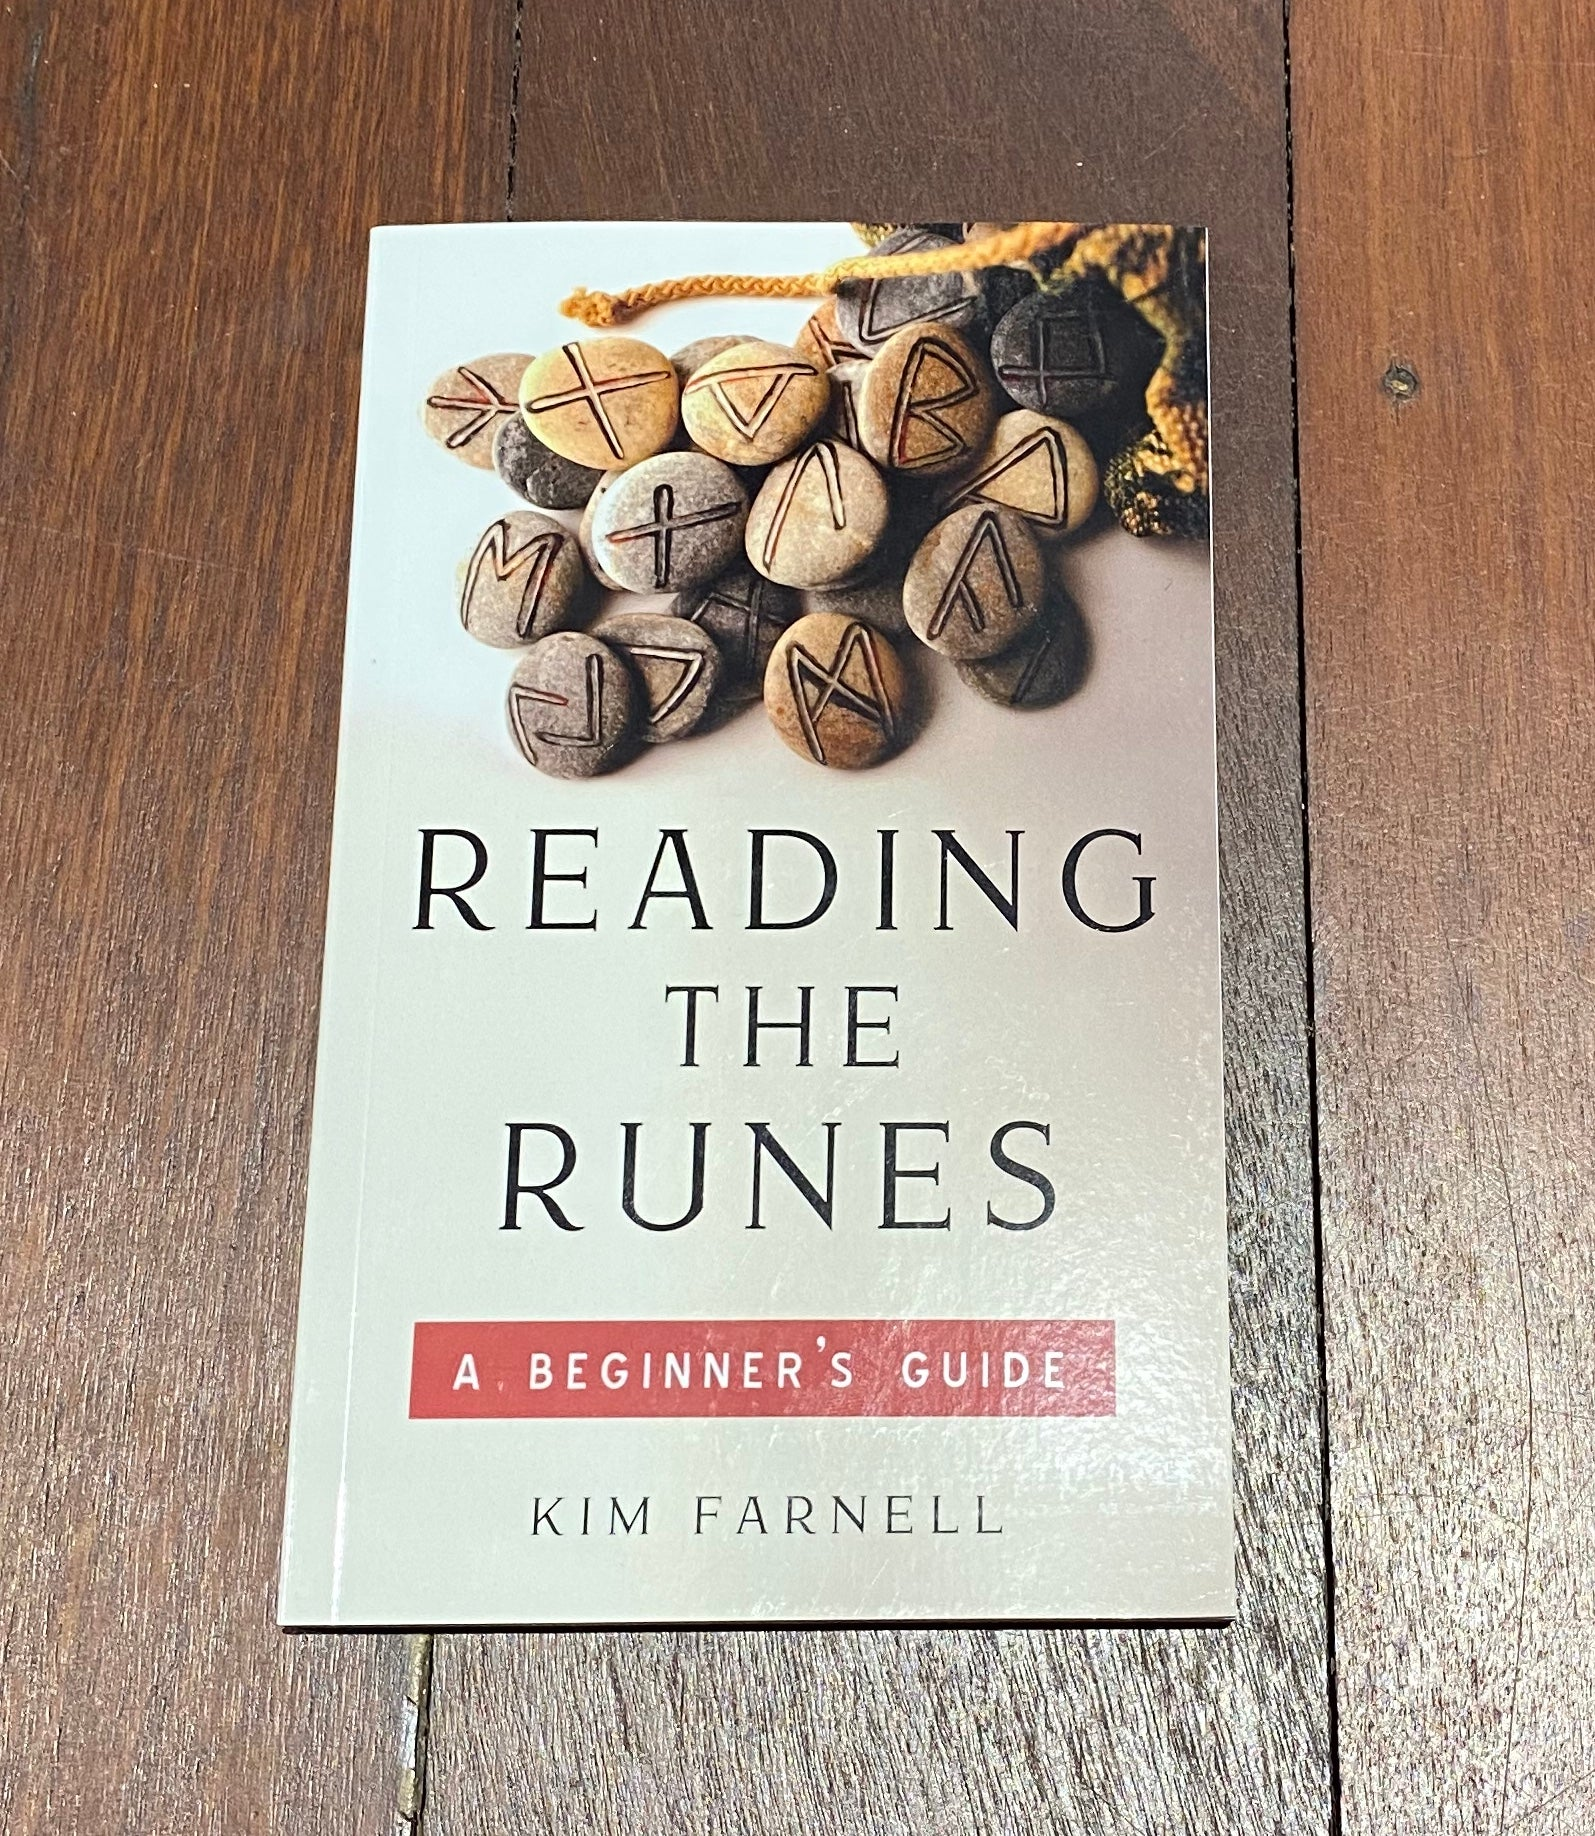 Reading the Runes - book